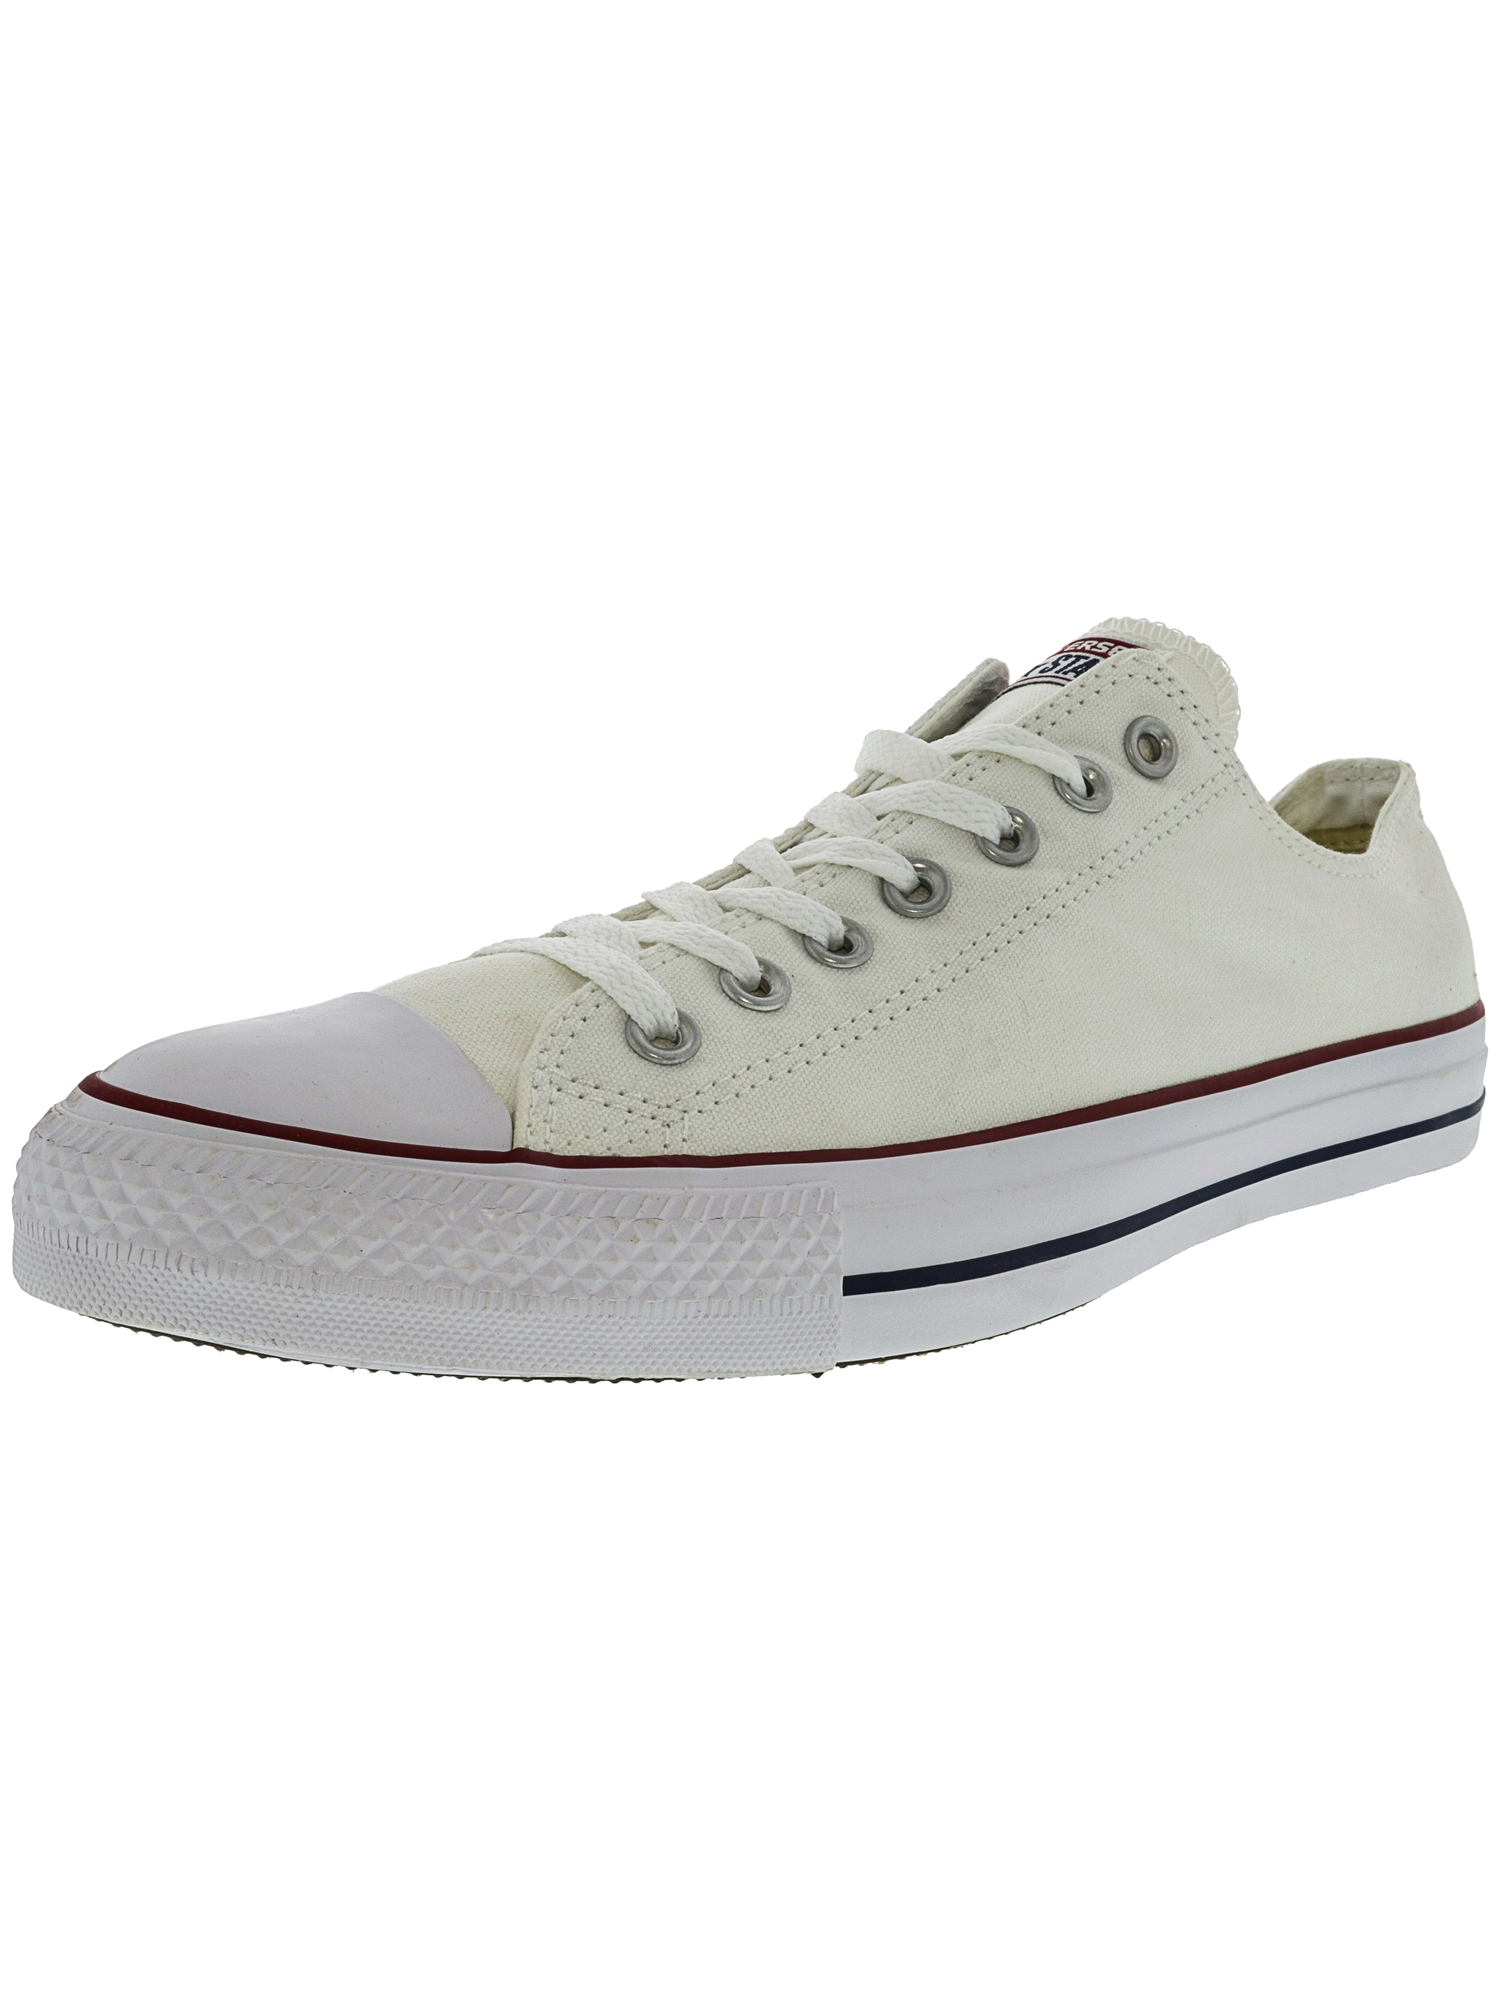 Converse All Star Ox Optical White   Ankle-High Fashion Sneaker 12.5M 10.5M by Converse